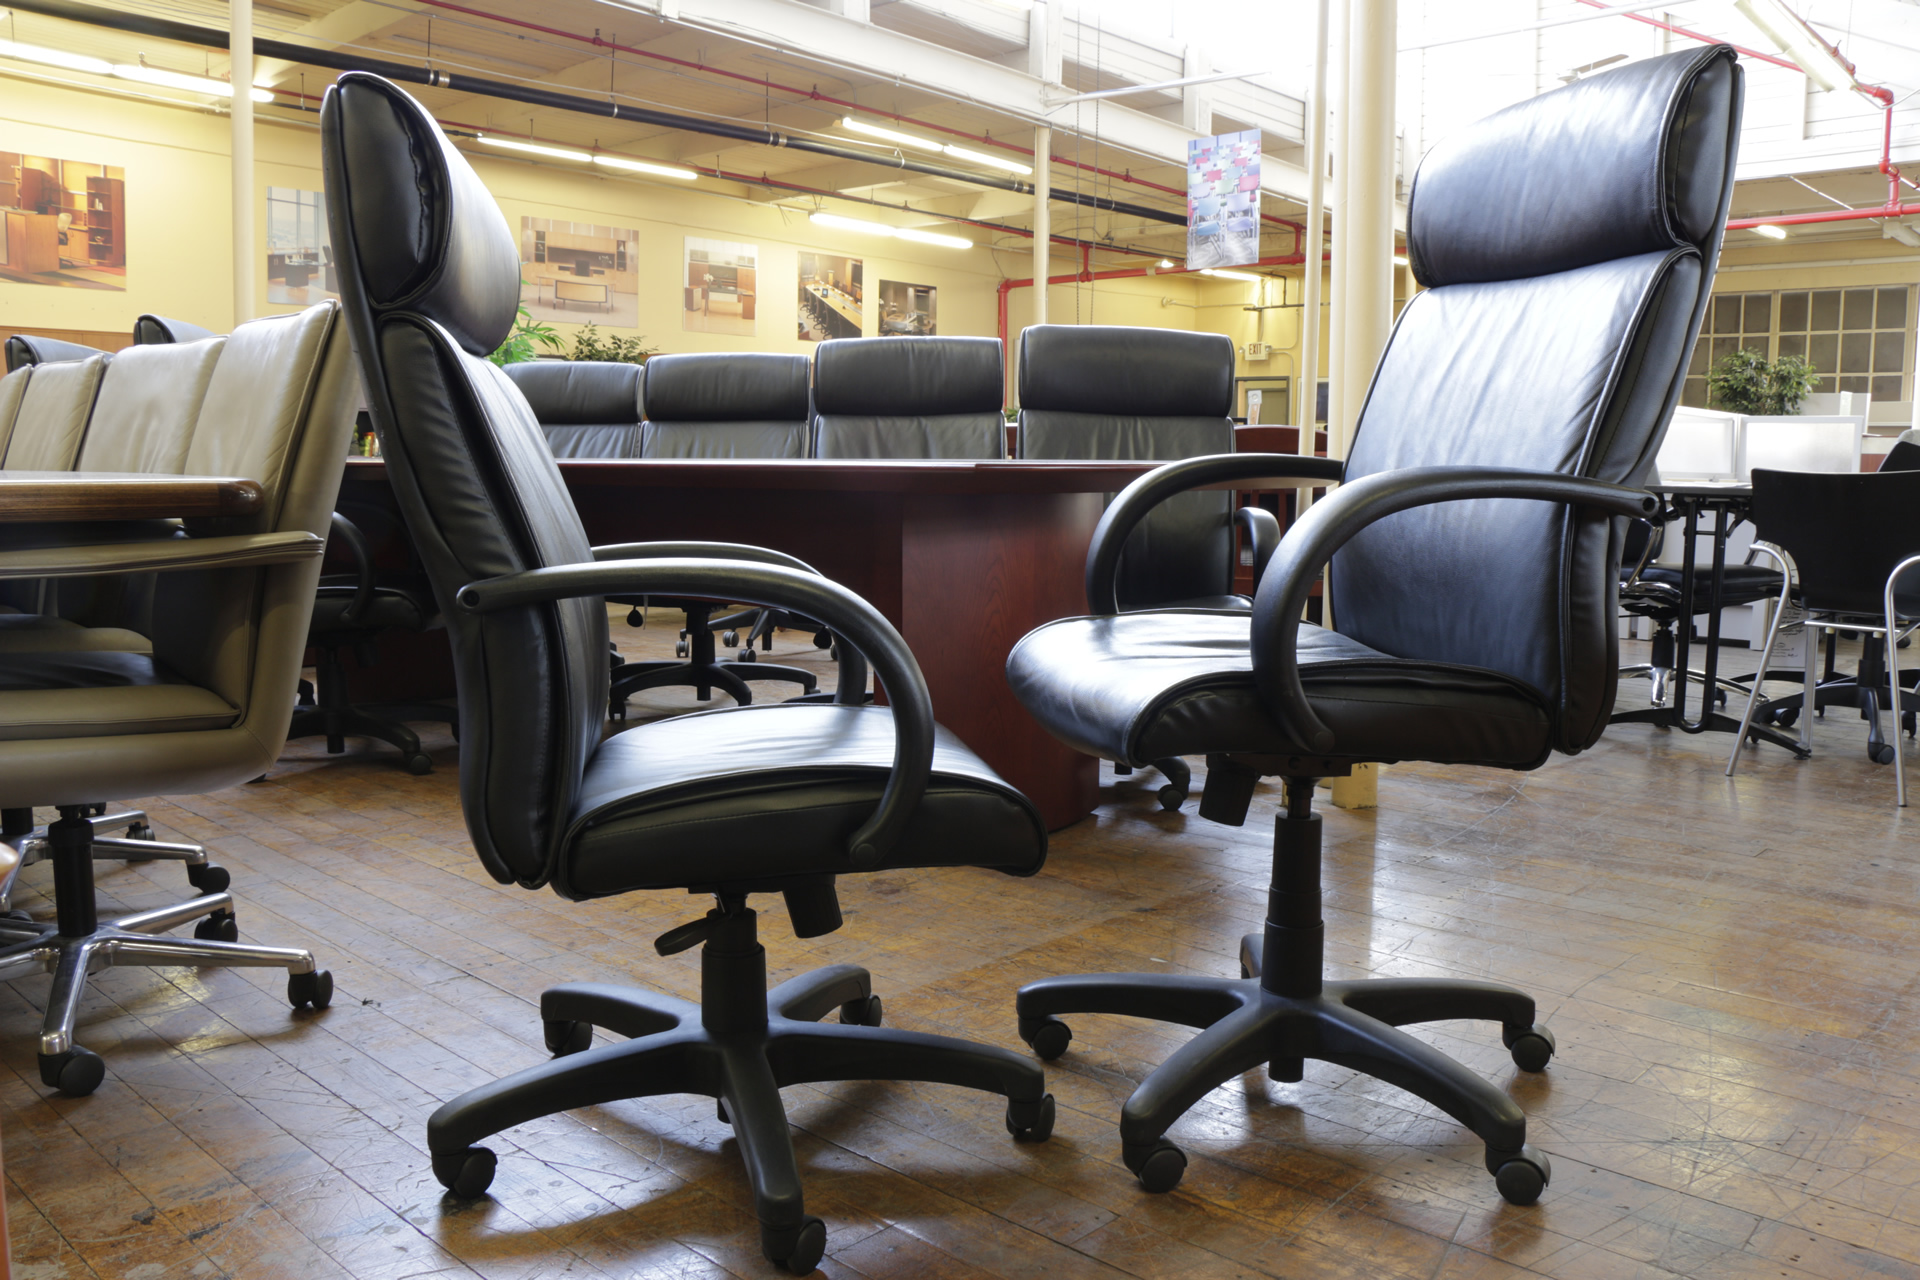 peartreeofficefurniture_peartreeofficefurniture_mg_2010.jpg